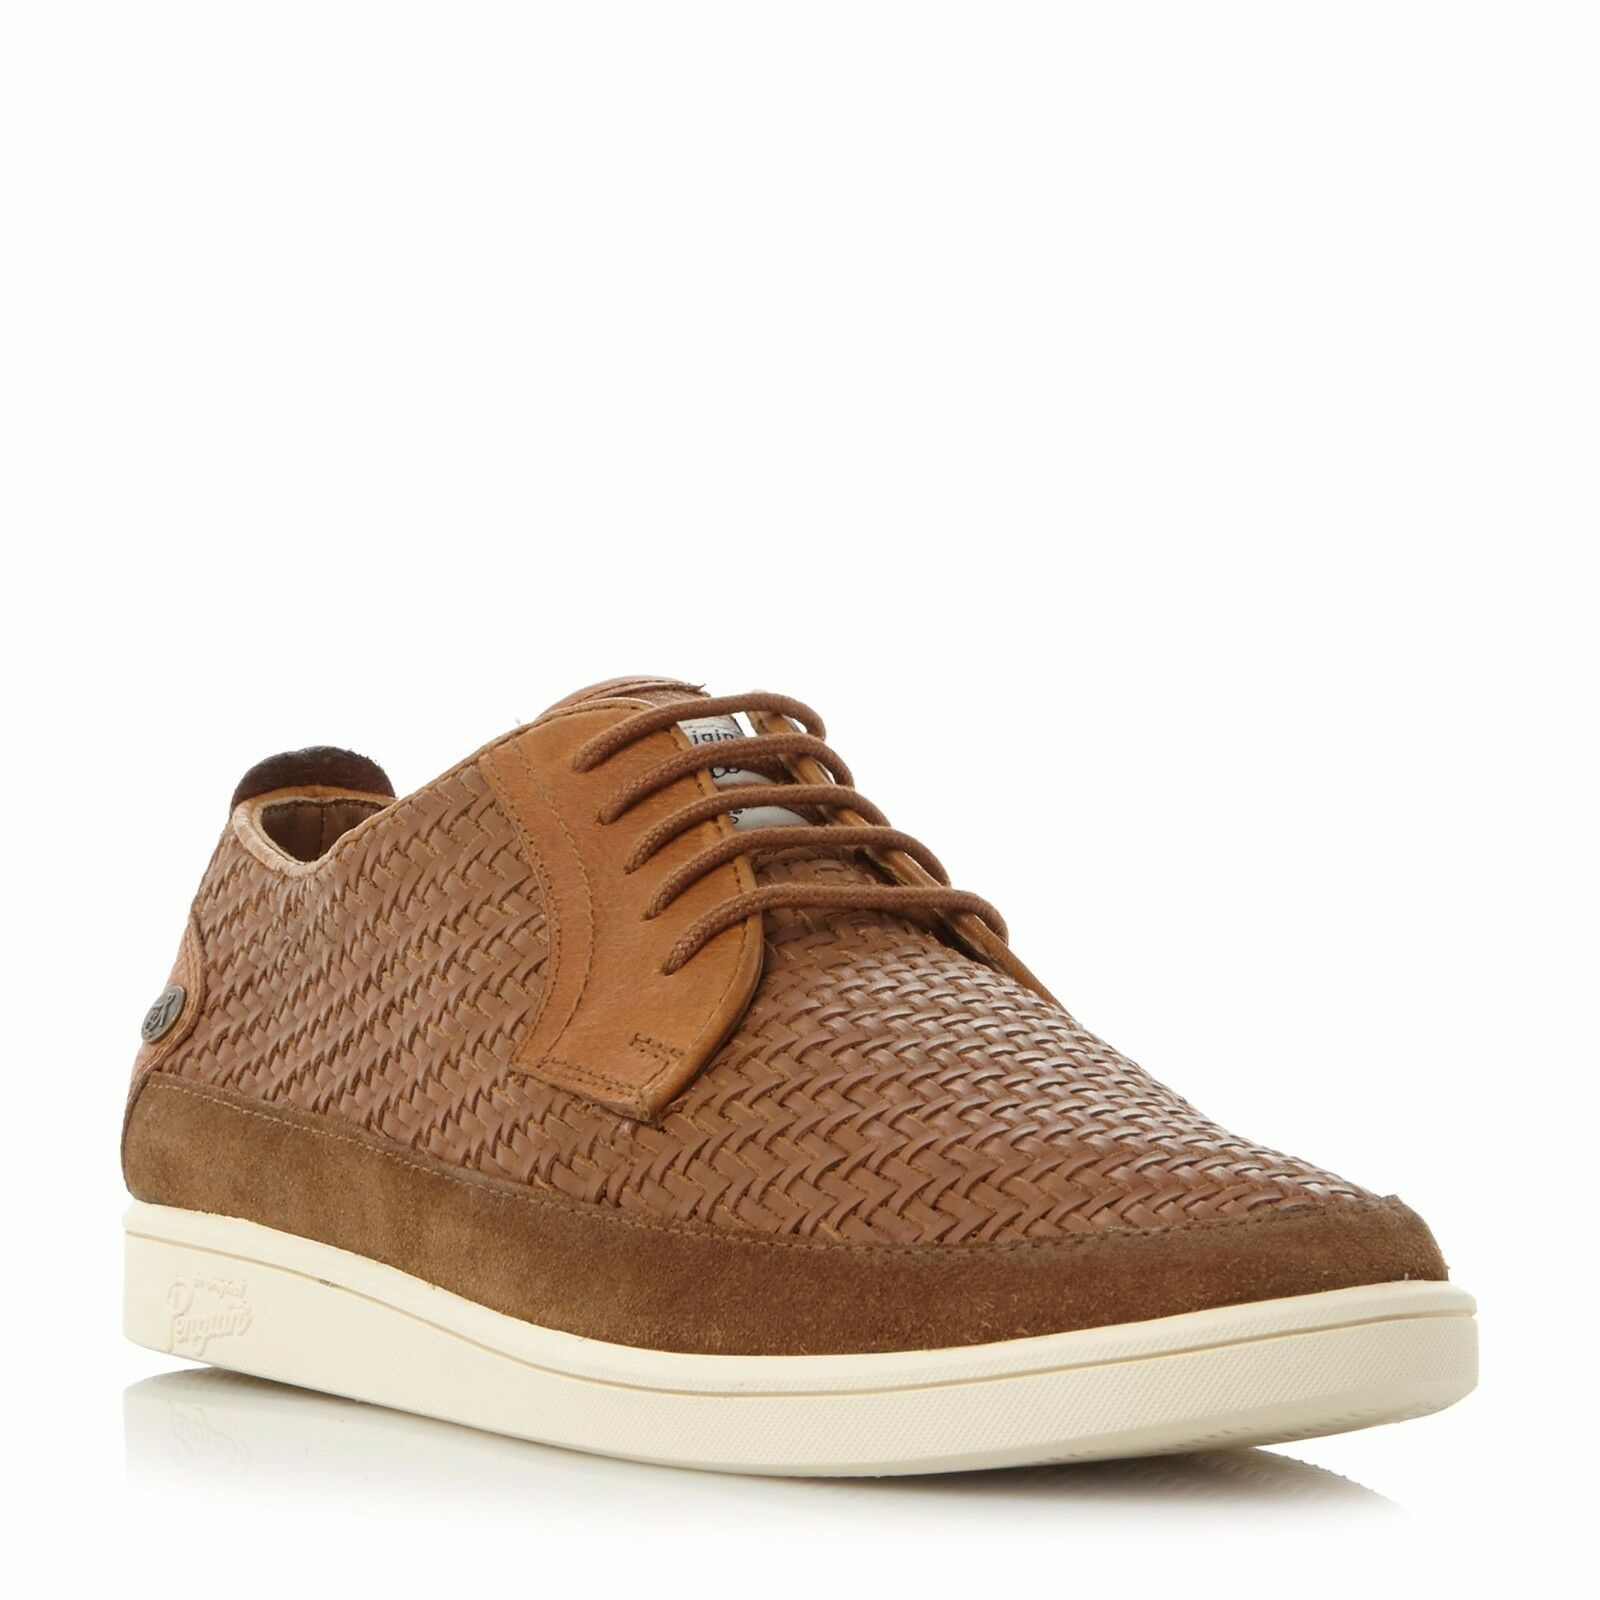 Original Penguin Tan Leather Weave shoes  Size - 11 (Style Name - Lime)